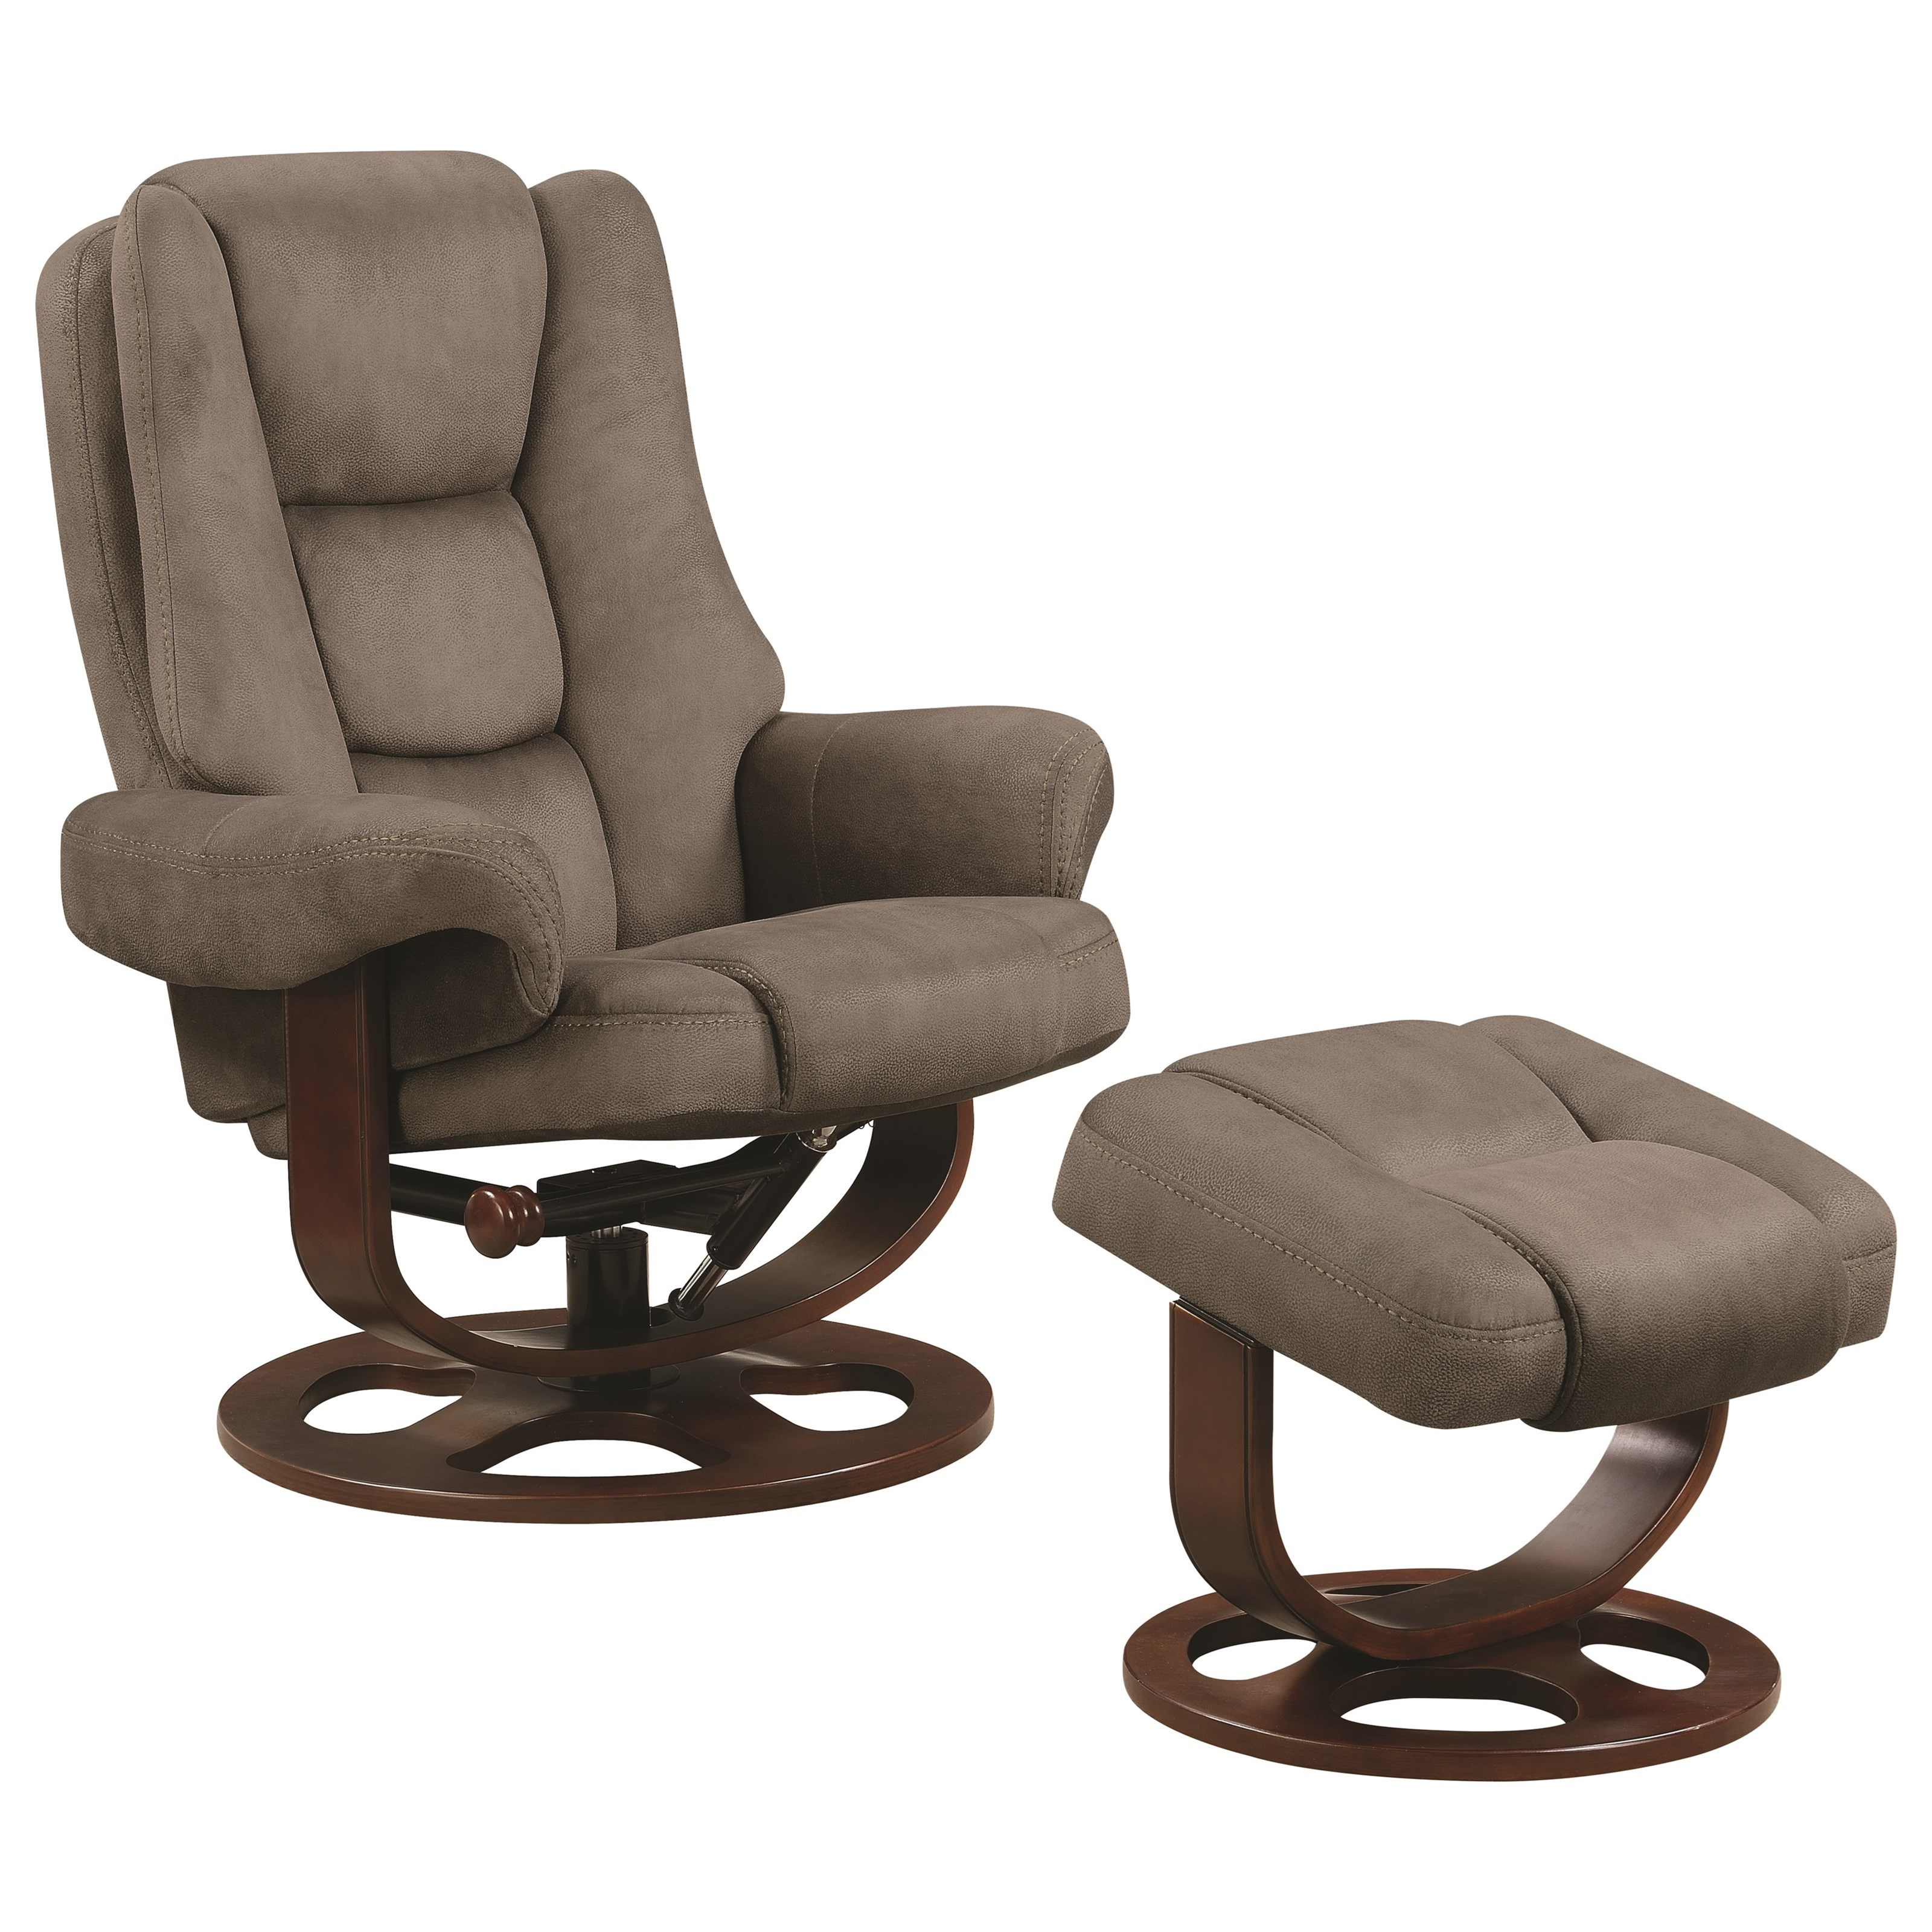 Stressless Recliners With Ottoman Coaster Recliners With Ottomans 600096 Reclining Chair